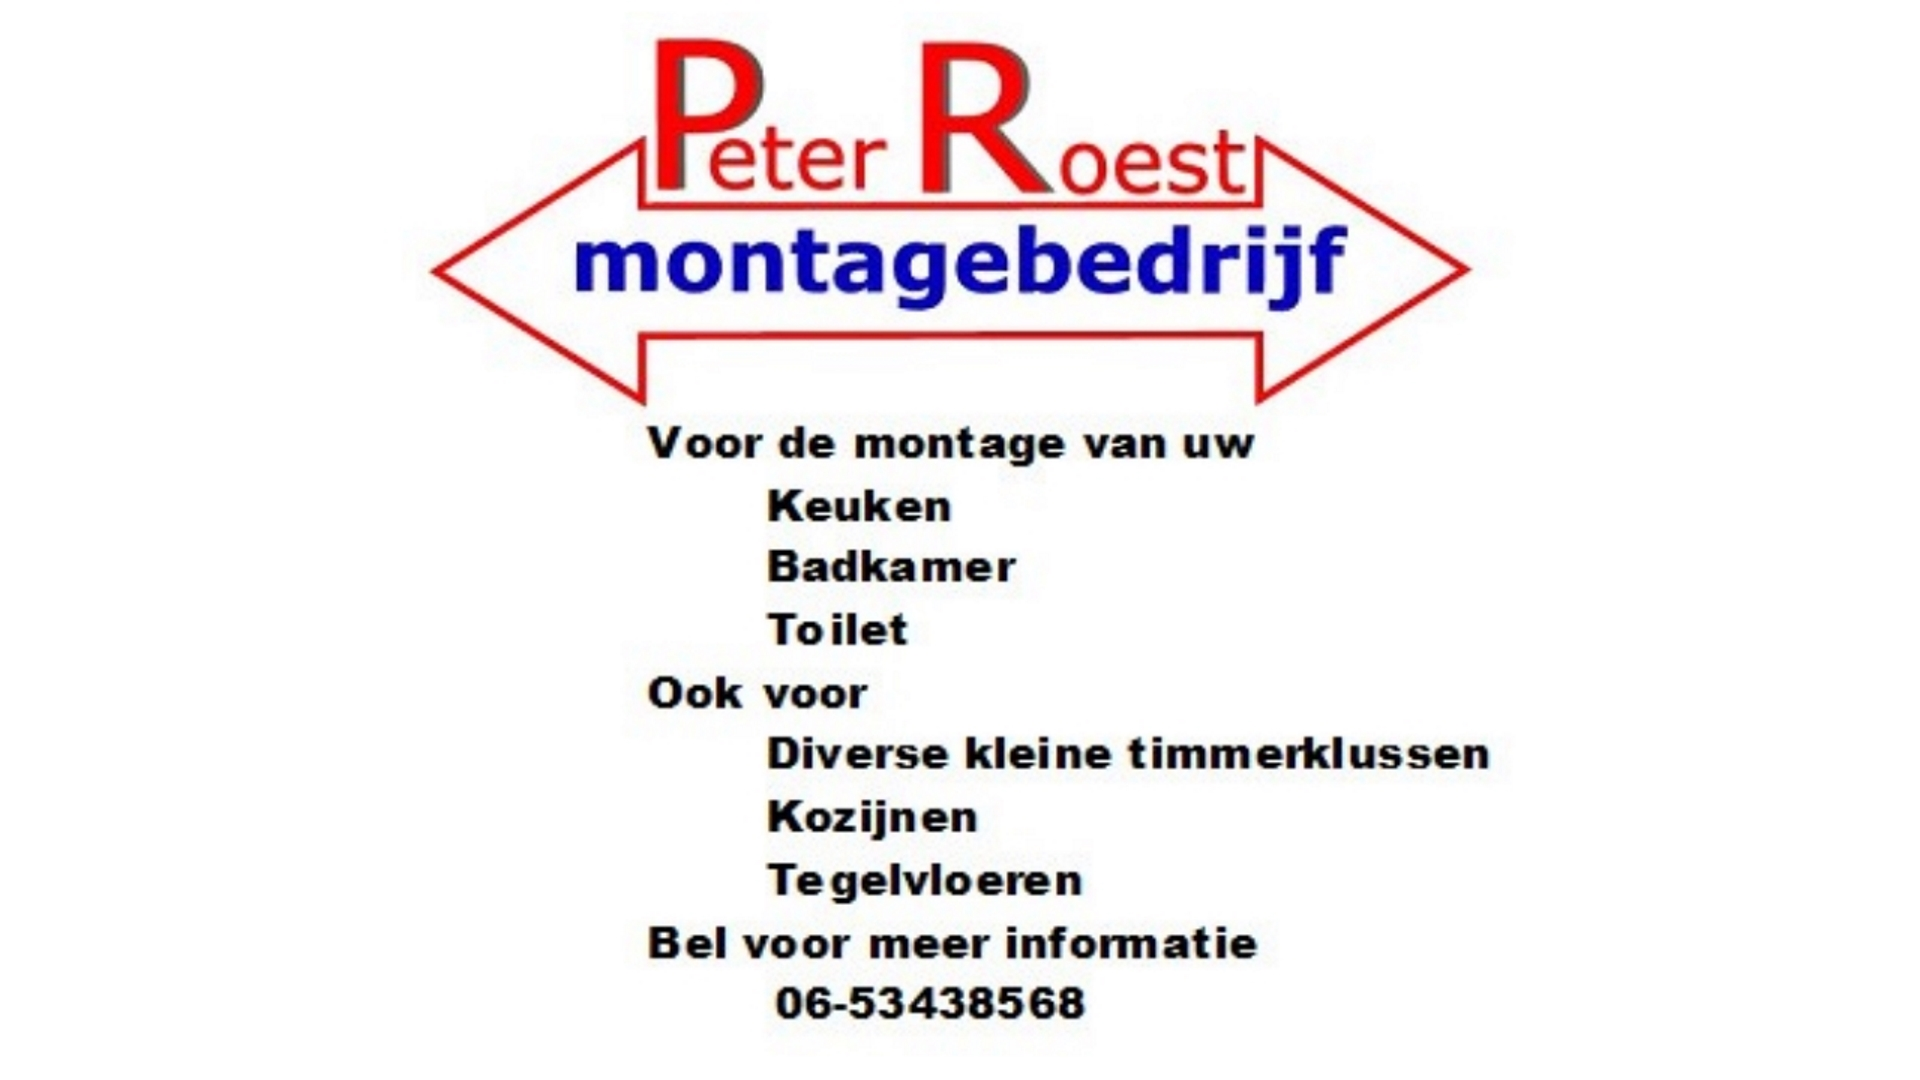 Peter Roest